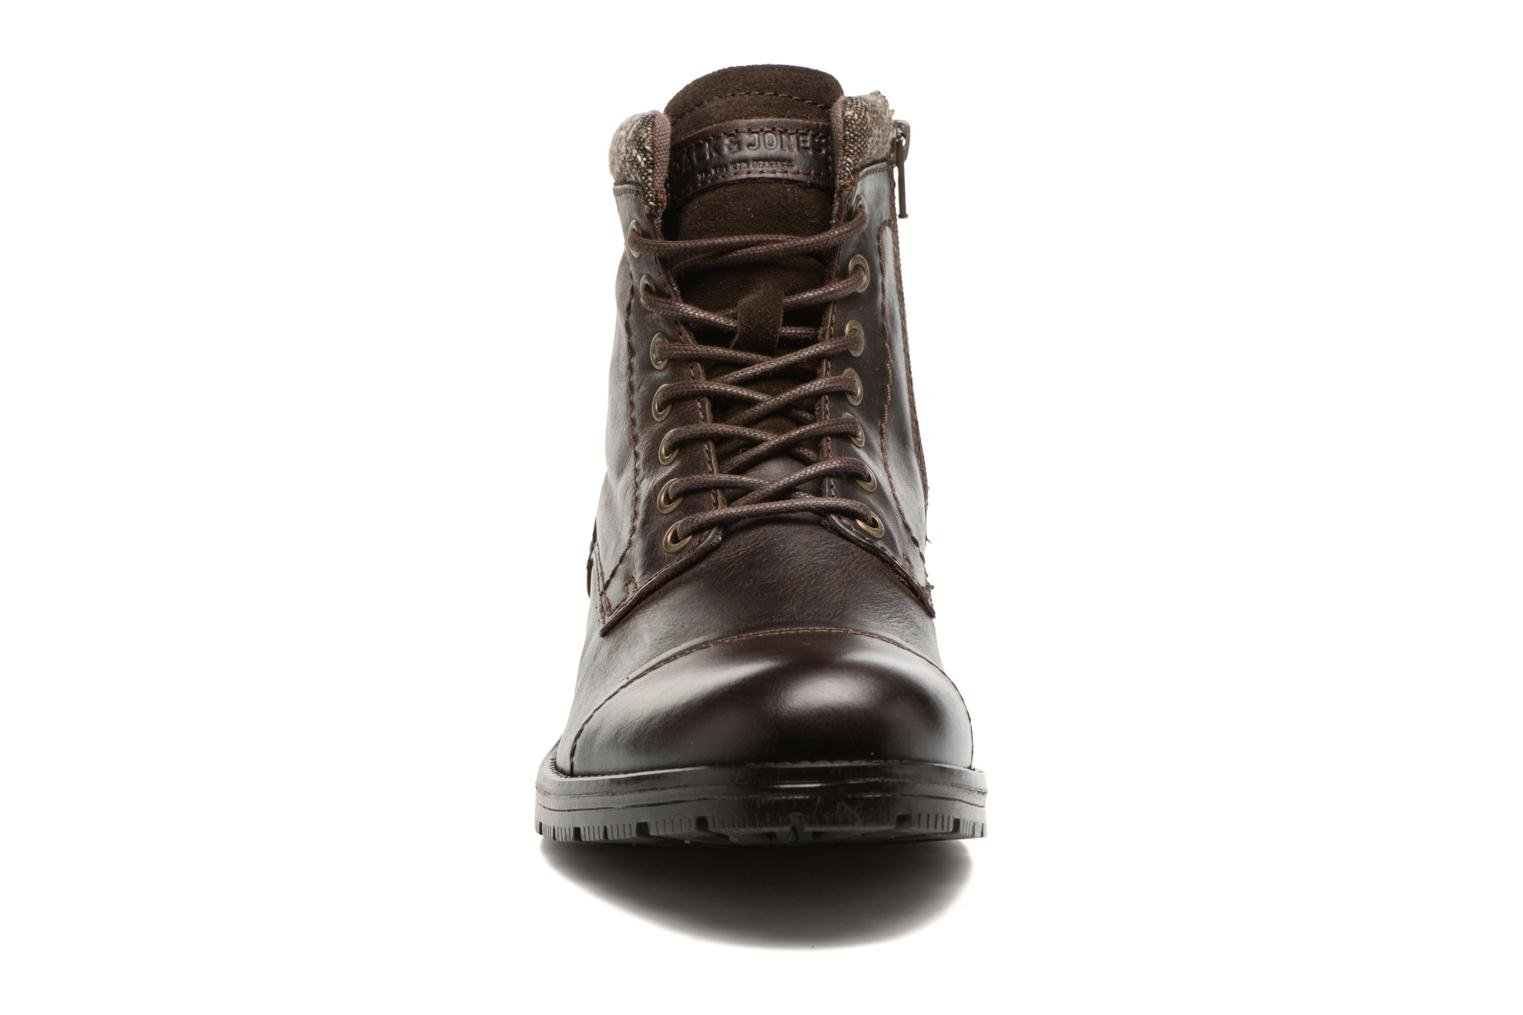 JFWMARLY LEATHER Bison